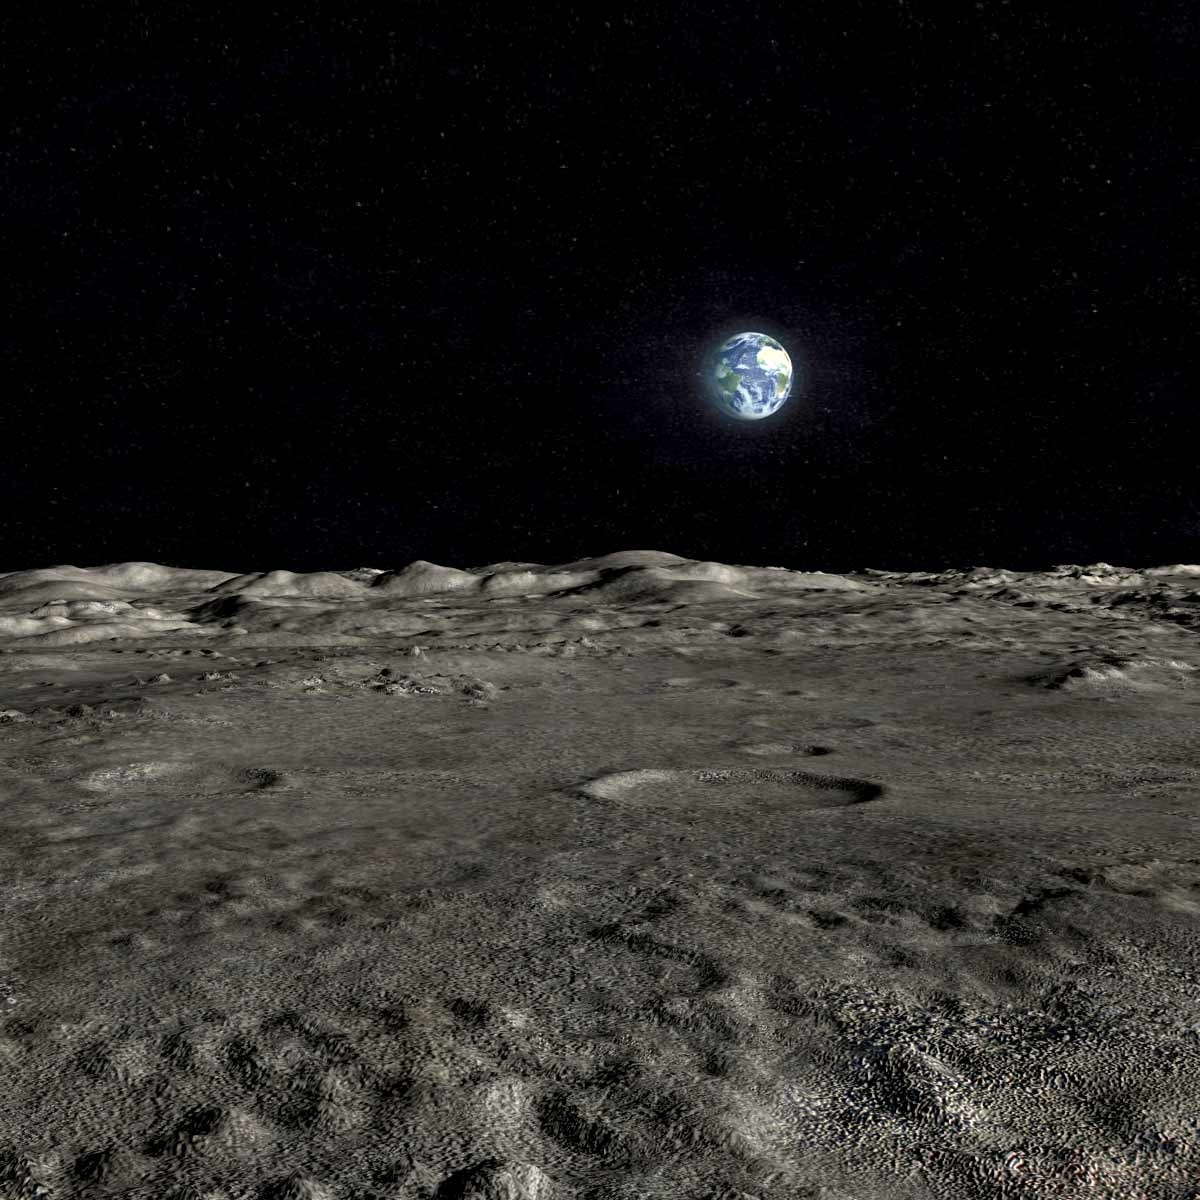 lunar landscape looking at earth - photo #21